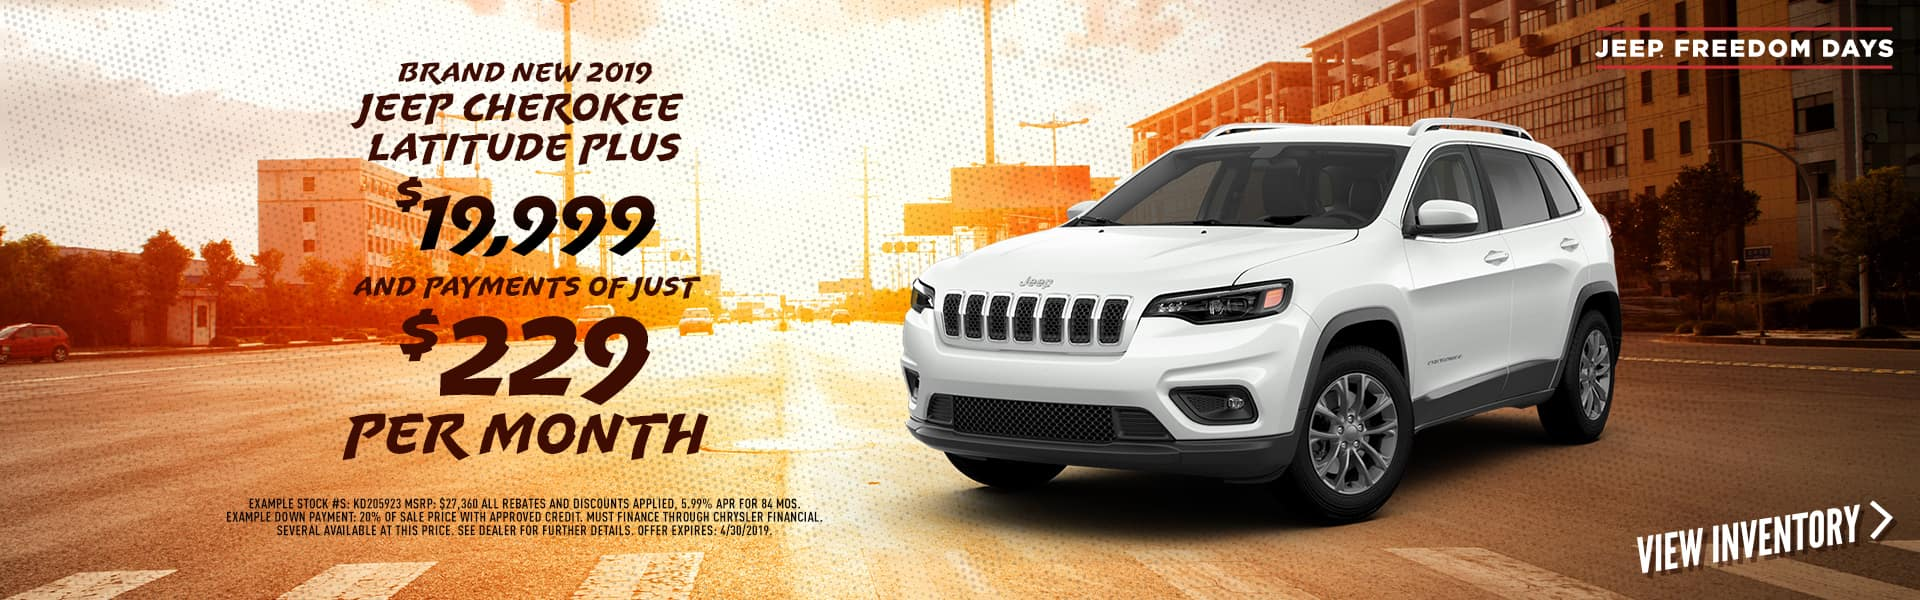 brand-new-2019-jeep-cherokee-latitude-plus-with-payments-of-229-per-month-tulsa